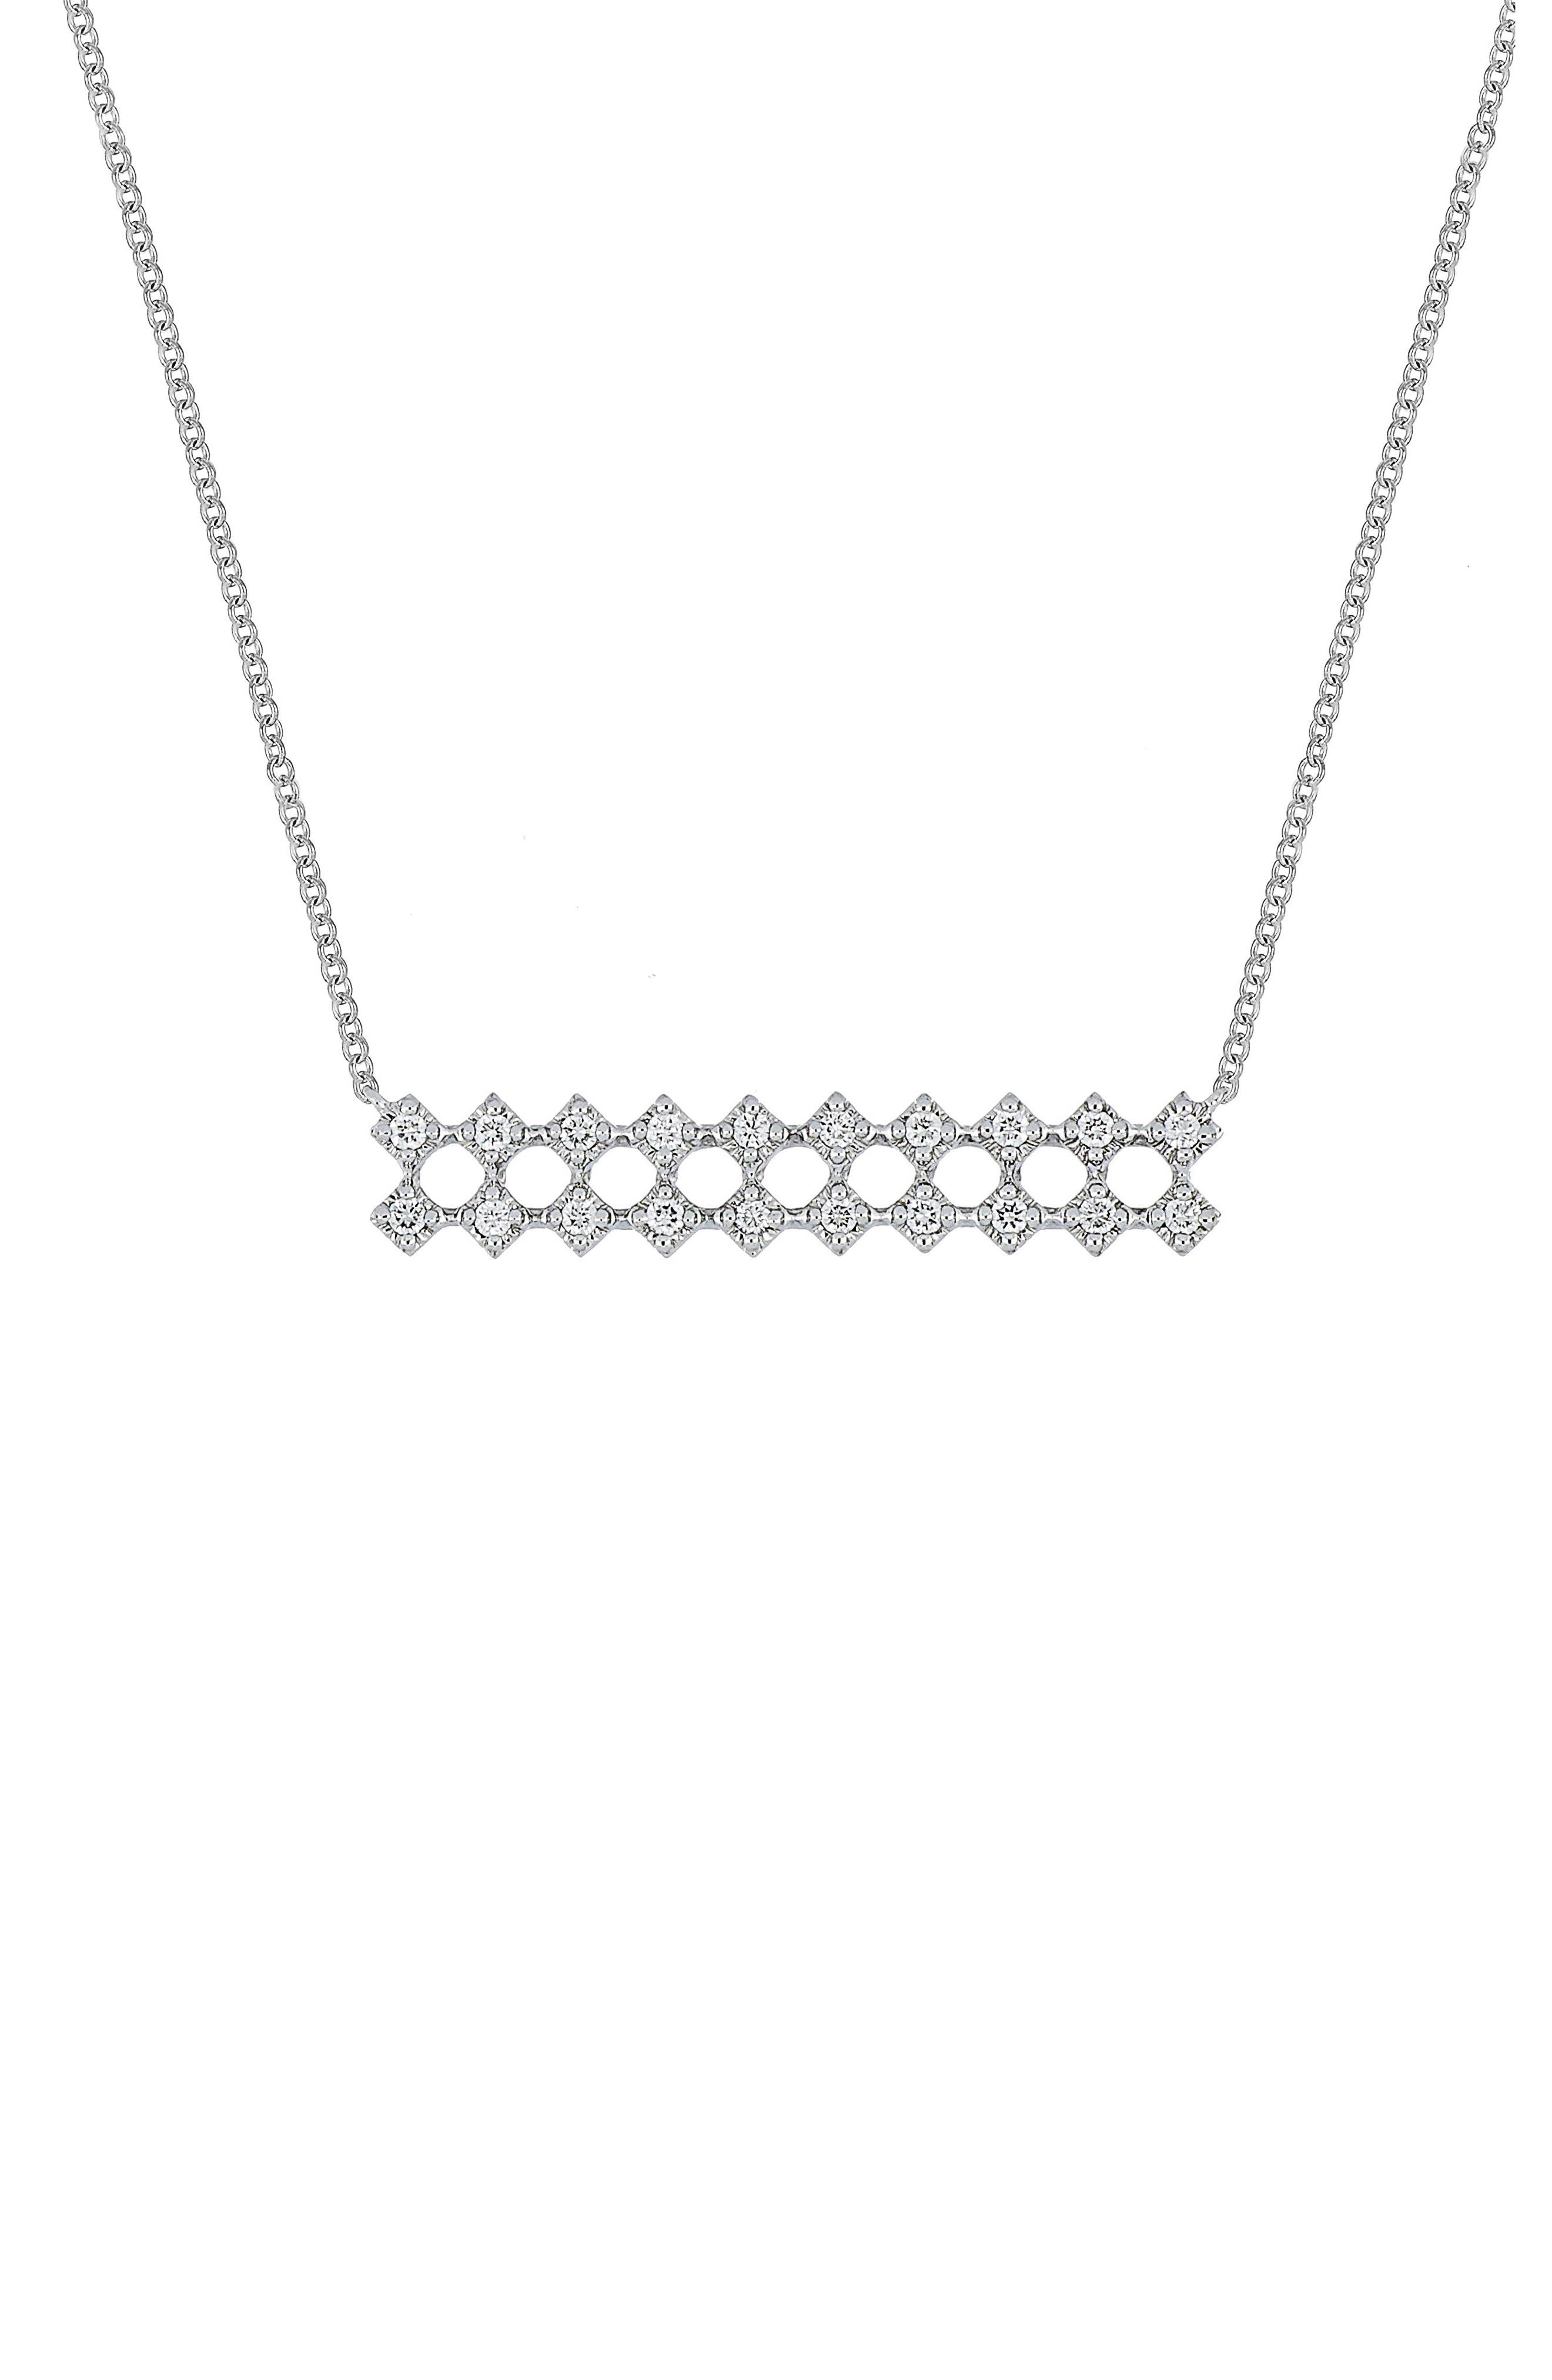 Alternate Image 1 Selected - Bony Levy Mila Large Bar Pendant Necklace (Nordstrom Exclusive)